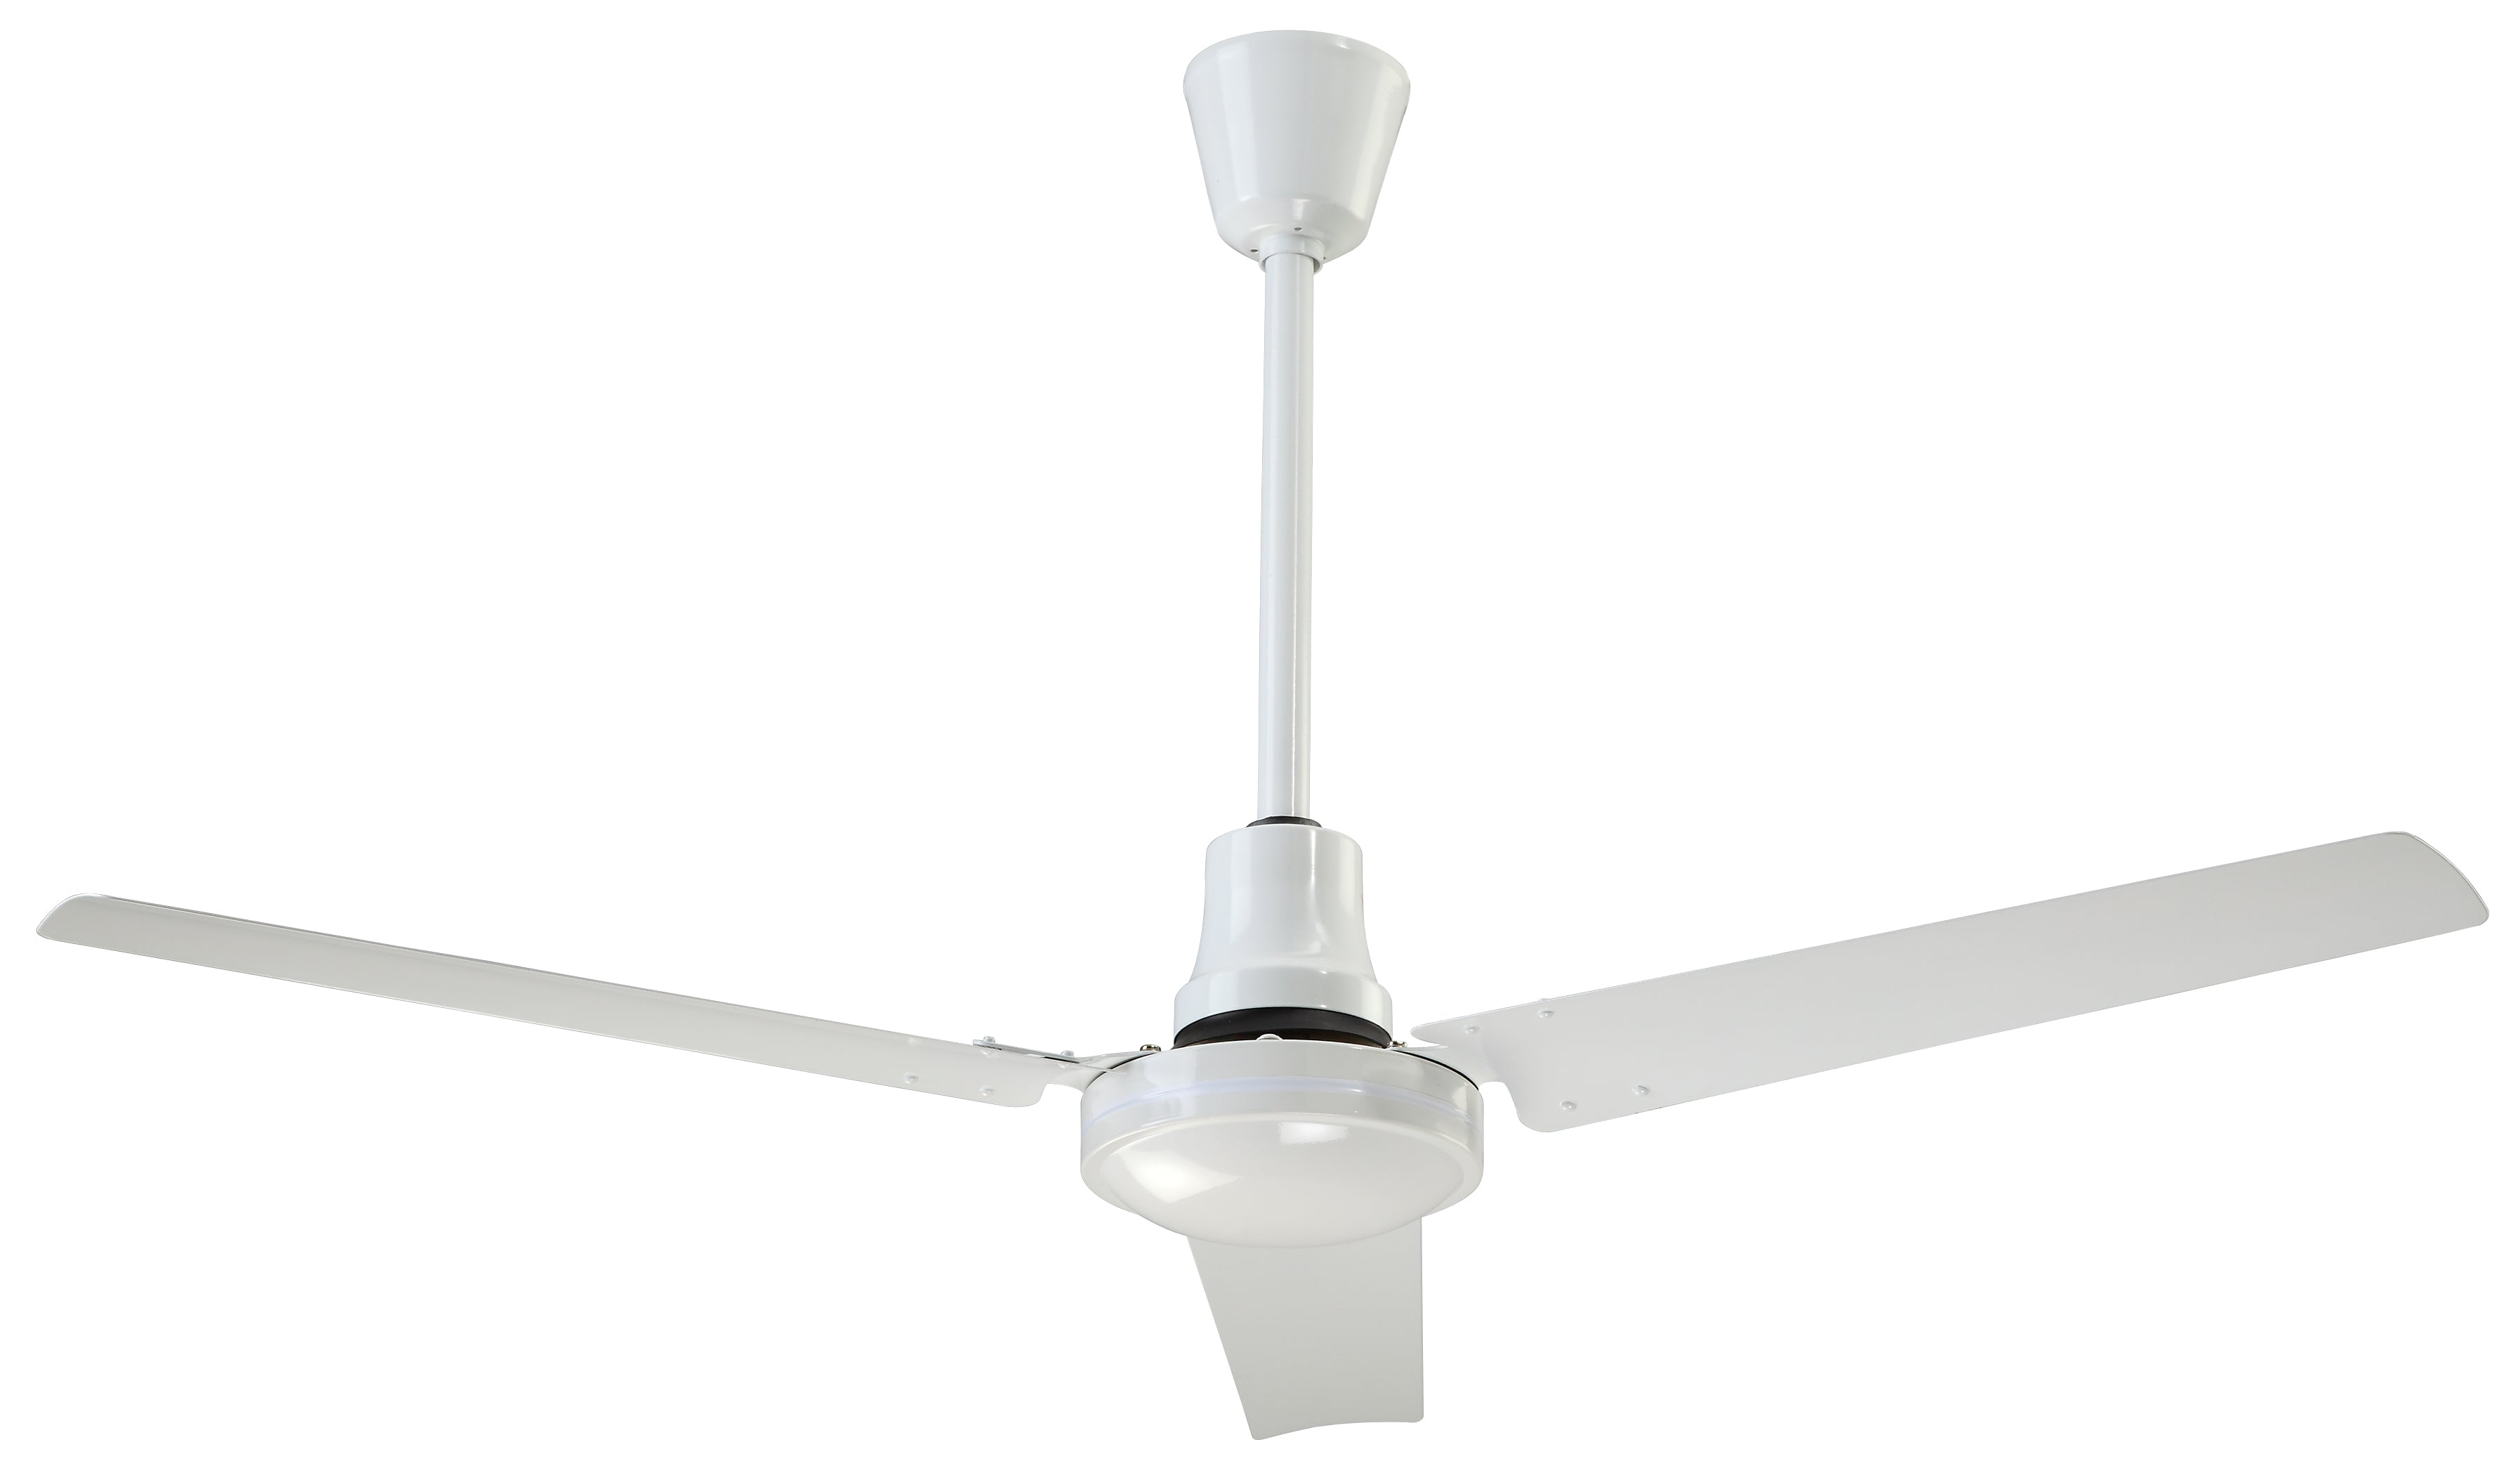 Outdoor UL507 Rated Fans – Industrial Fans Direct